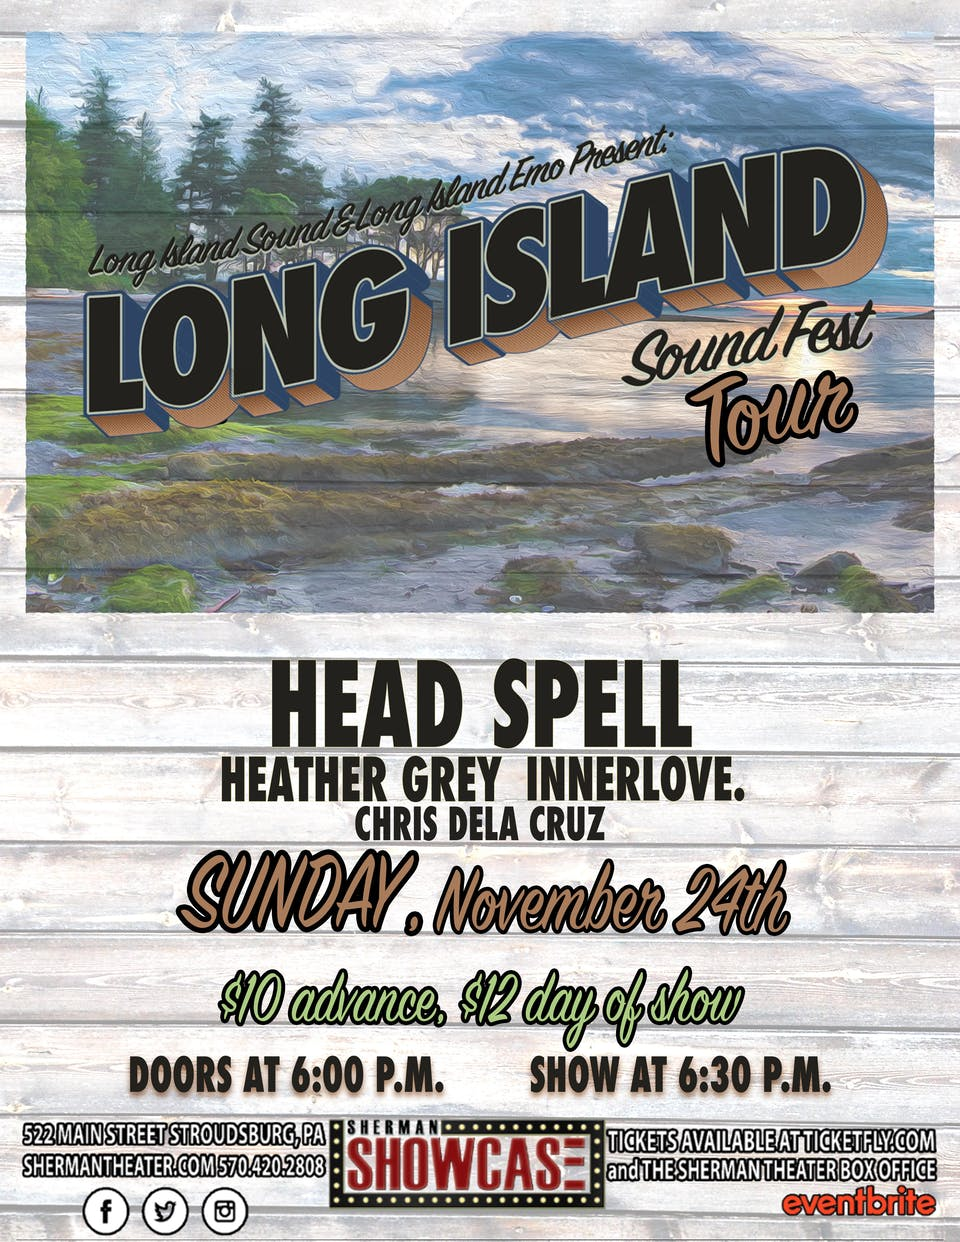 Long Island Sound Fest Tour